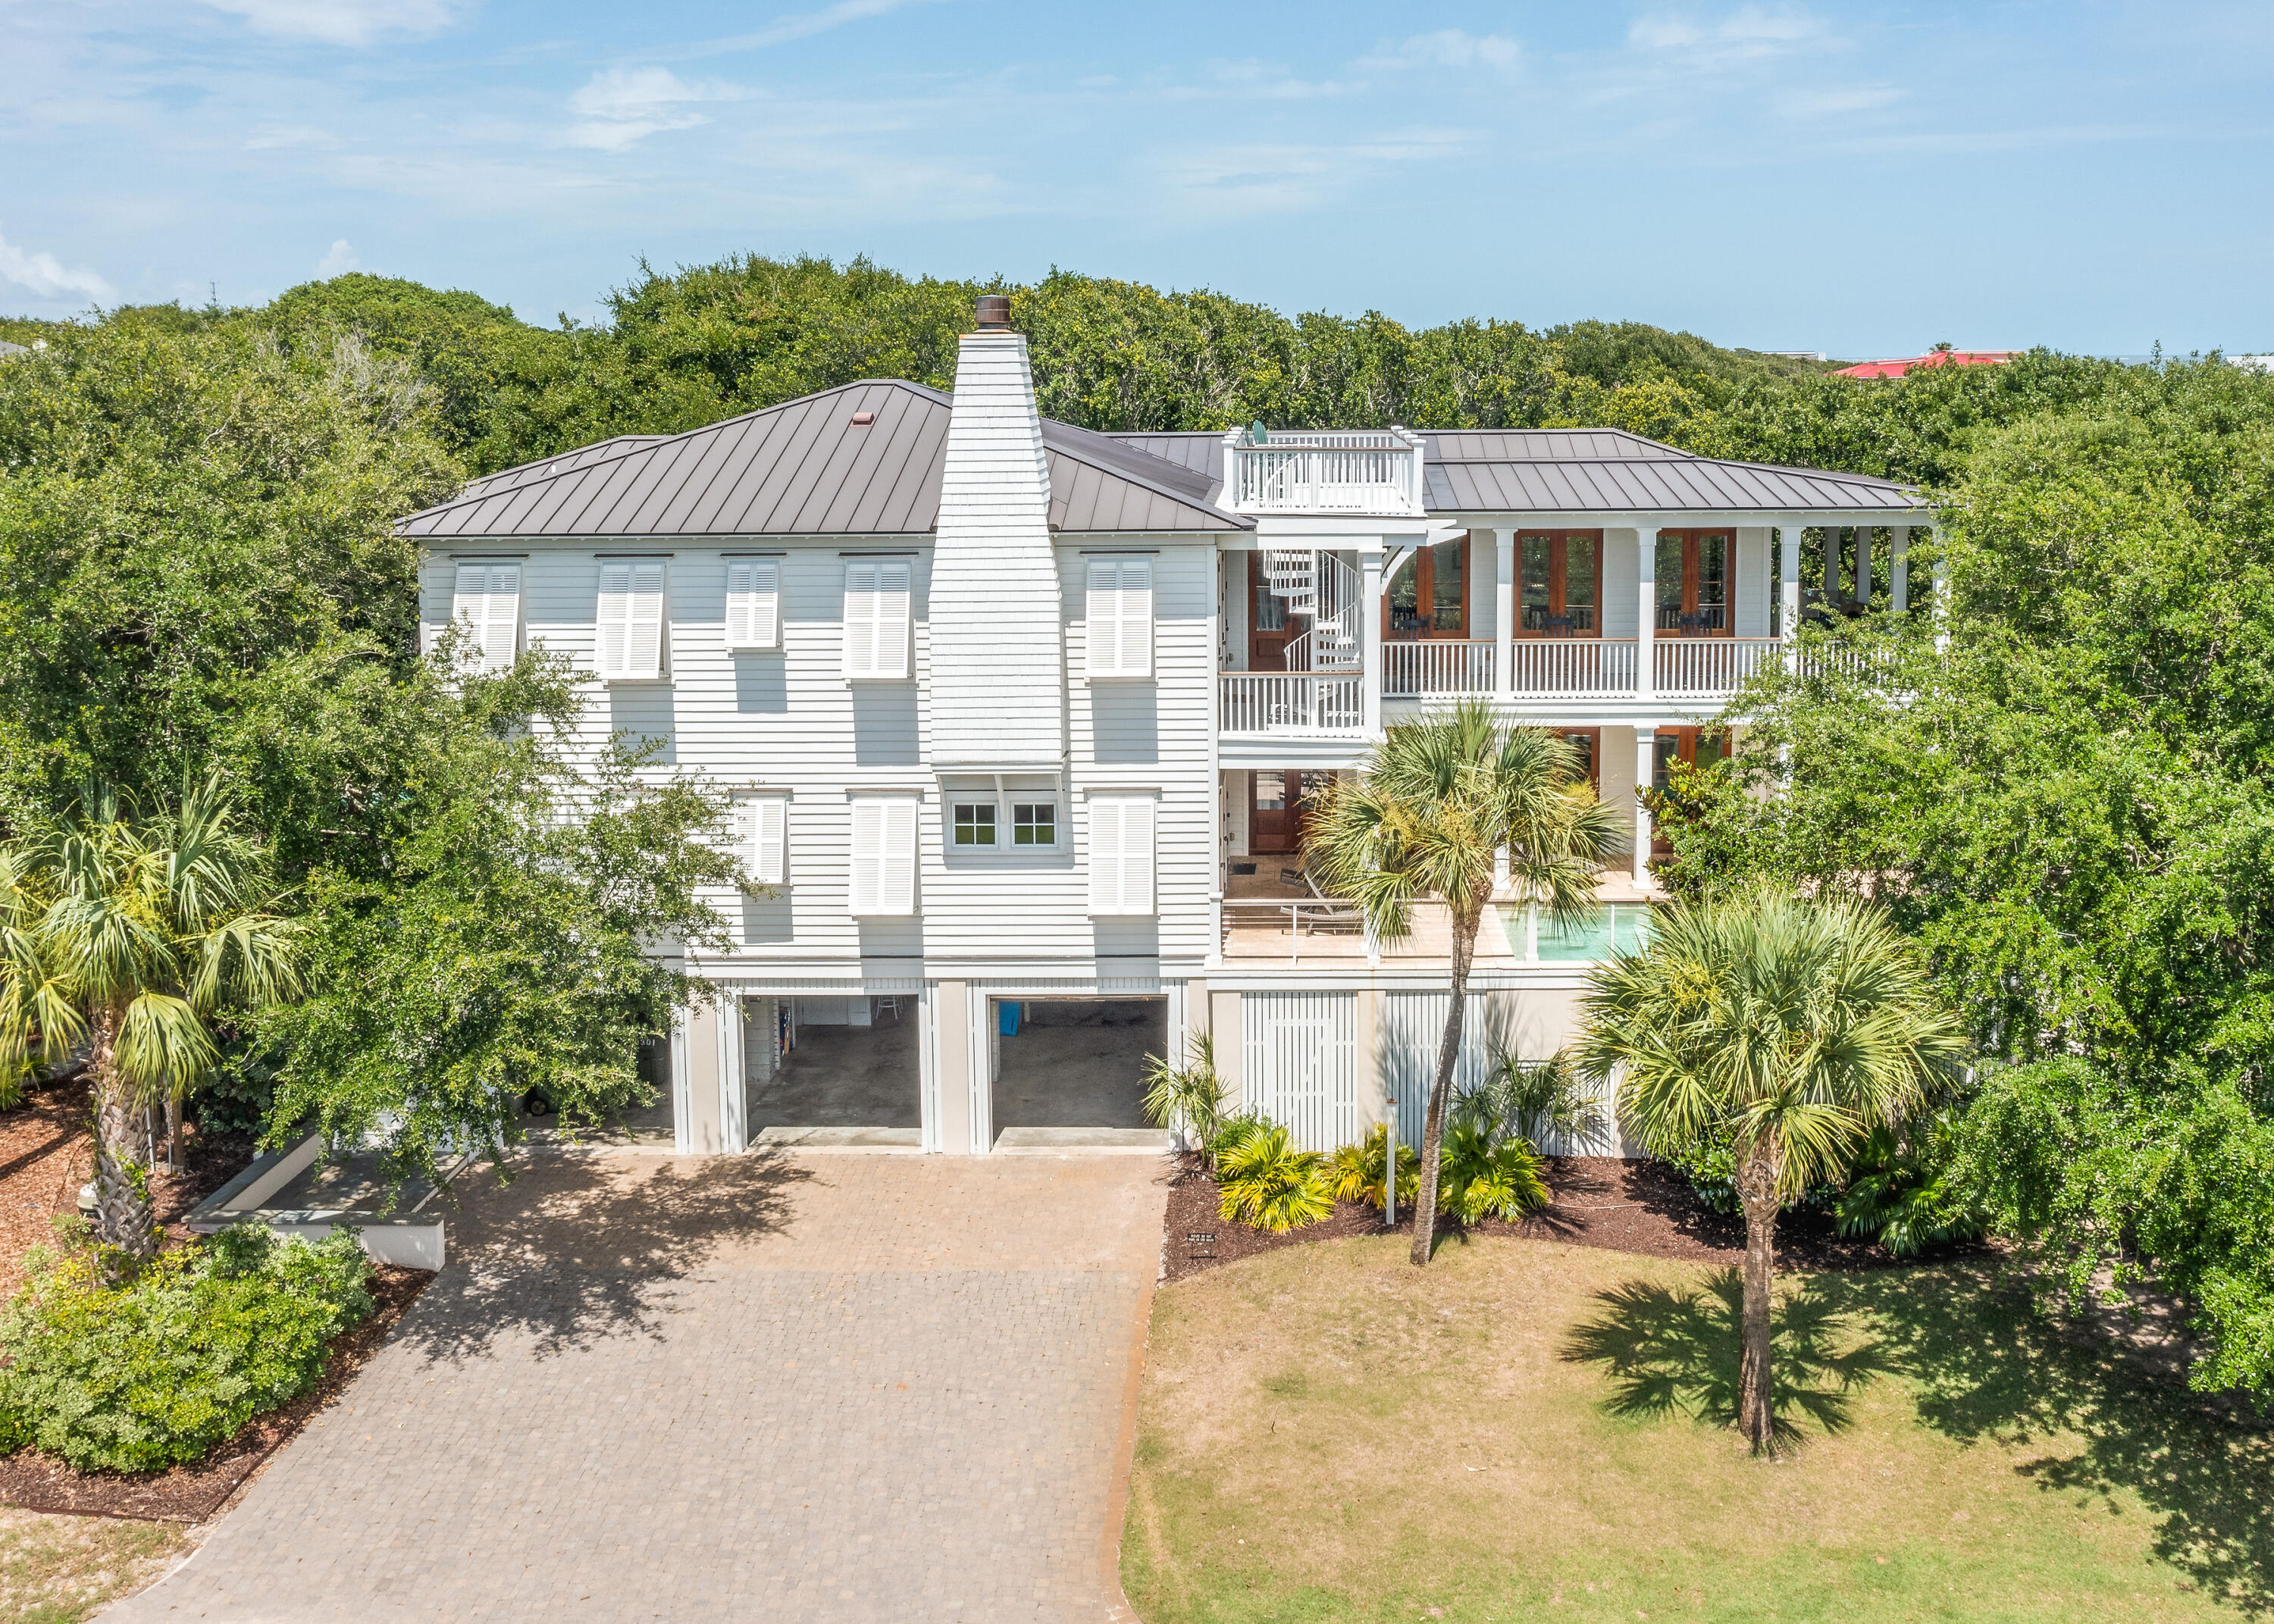 Incredible second row hidden gem on Isle of Palms! This premier custom home by Sheppard Construction features everything you need for island living on a grand scale and only steps from the beach! This beautiful home is one of the best on the island; second row for easy access to the beach, elevated pool and deck, privacy provided by mature Live Oaks and other greenery, custom kitchen, and an open floor plan with multiple gathering spaces with doors and windows designed to catch the ocean breezes and beautiful natural light all day. After a walk on the beach, cool off in the pool, enjoy a meal made in the custom kitchen, or just relax on one of the many porches.  Conveniently located close to dining, shopping, and outdoor activities on the island and in nearby Mt Pleasant and Charleston. The custom chef's kitchen features a SubZero refrigerator, Wolf six burner range with double ovens, marble countertops, custom cabinetry, ice maker, wine fridge, and a large island with seating for four.  The second floor is rounded out with a main living area with fireplace, second seating area, dining area, two bedroom suites, and access to the full length porch and spiral staircase to the rooftop deck.  On the first floor, you will find a media/living room and spacious main bedroom suite with direct access to the pool deck, and three more bedrooms and two bathrooms.  3301 Palm's other features include beadboard paneling, oak hardwood flooring throughout, central vacuum, and an elevator for your convenience..Designed with island life in mind, this well equipped home is the quintessential Isle of Palms beach house.Currently on a vacation rental program - rental numbers available upon request.